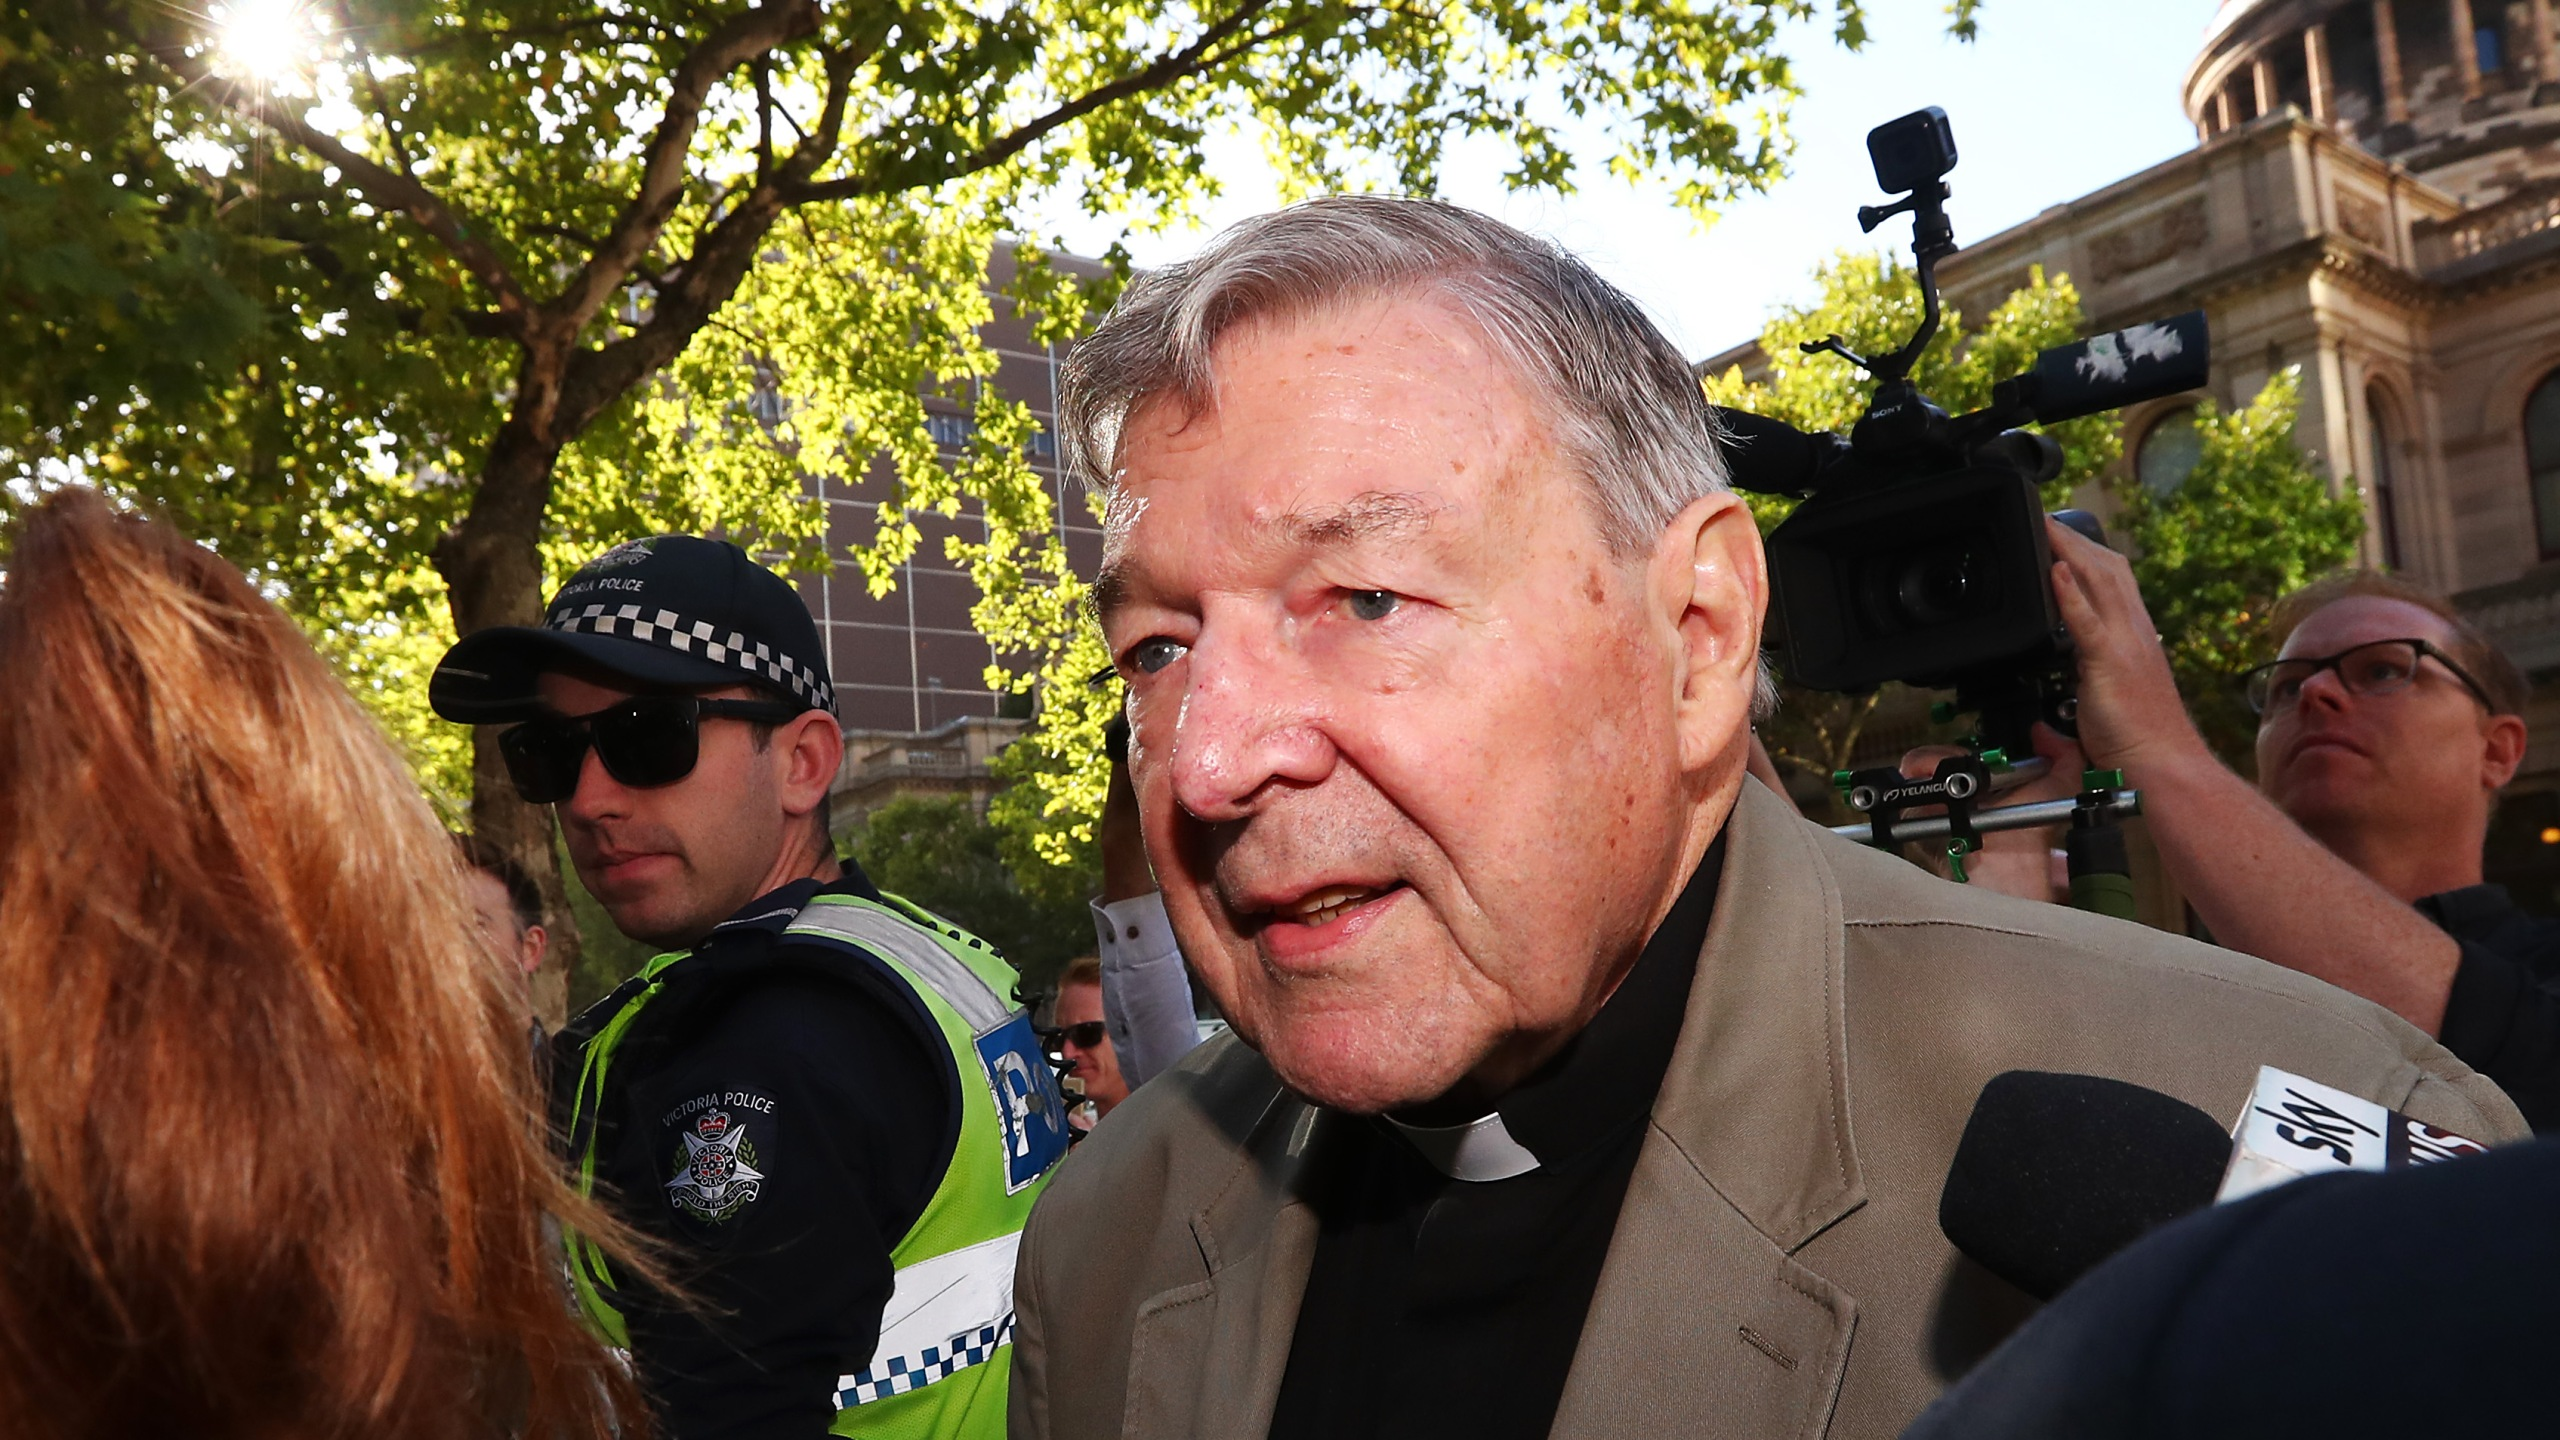 Cardinal George Pell arrives at Melbourne County Court on Feb. 27, 2019. (Credit: Michael Dodge/Getty Images)